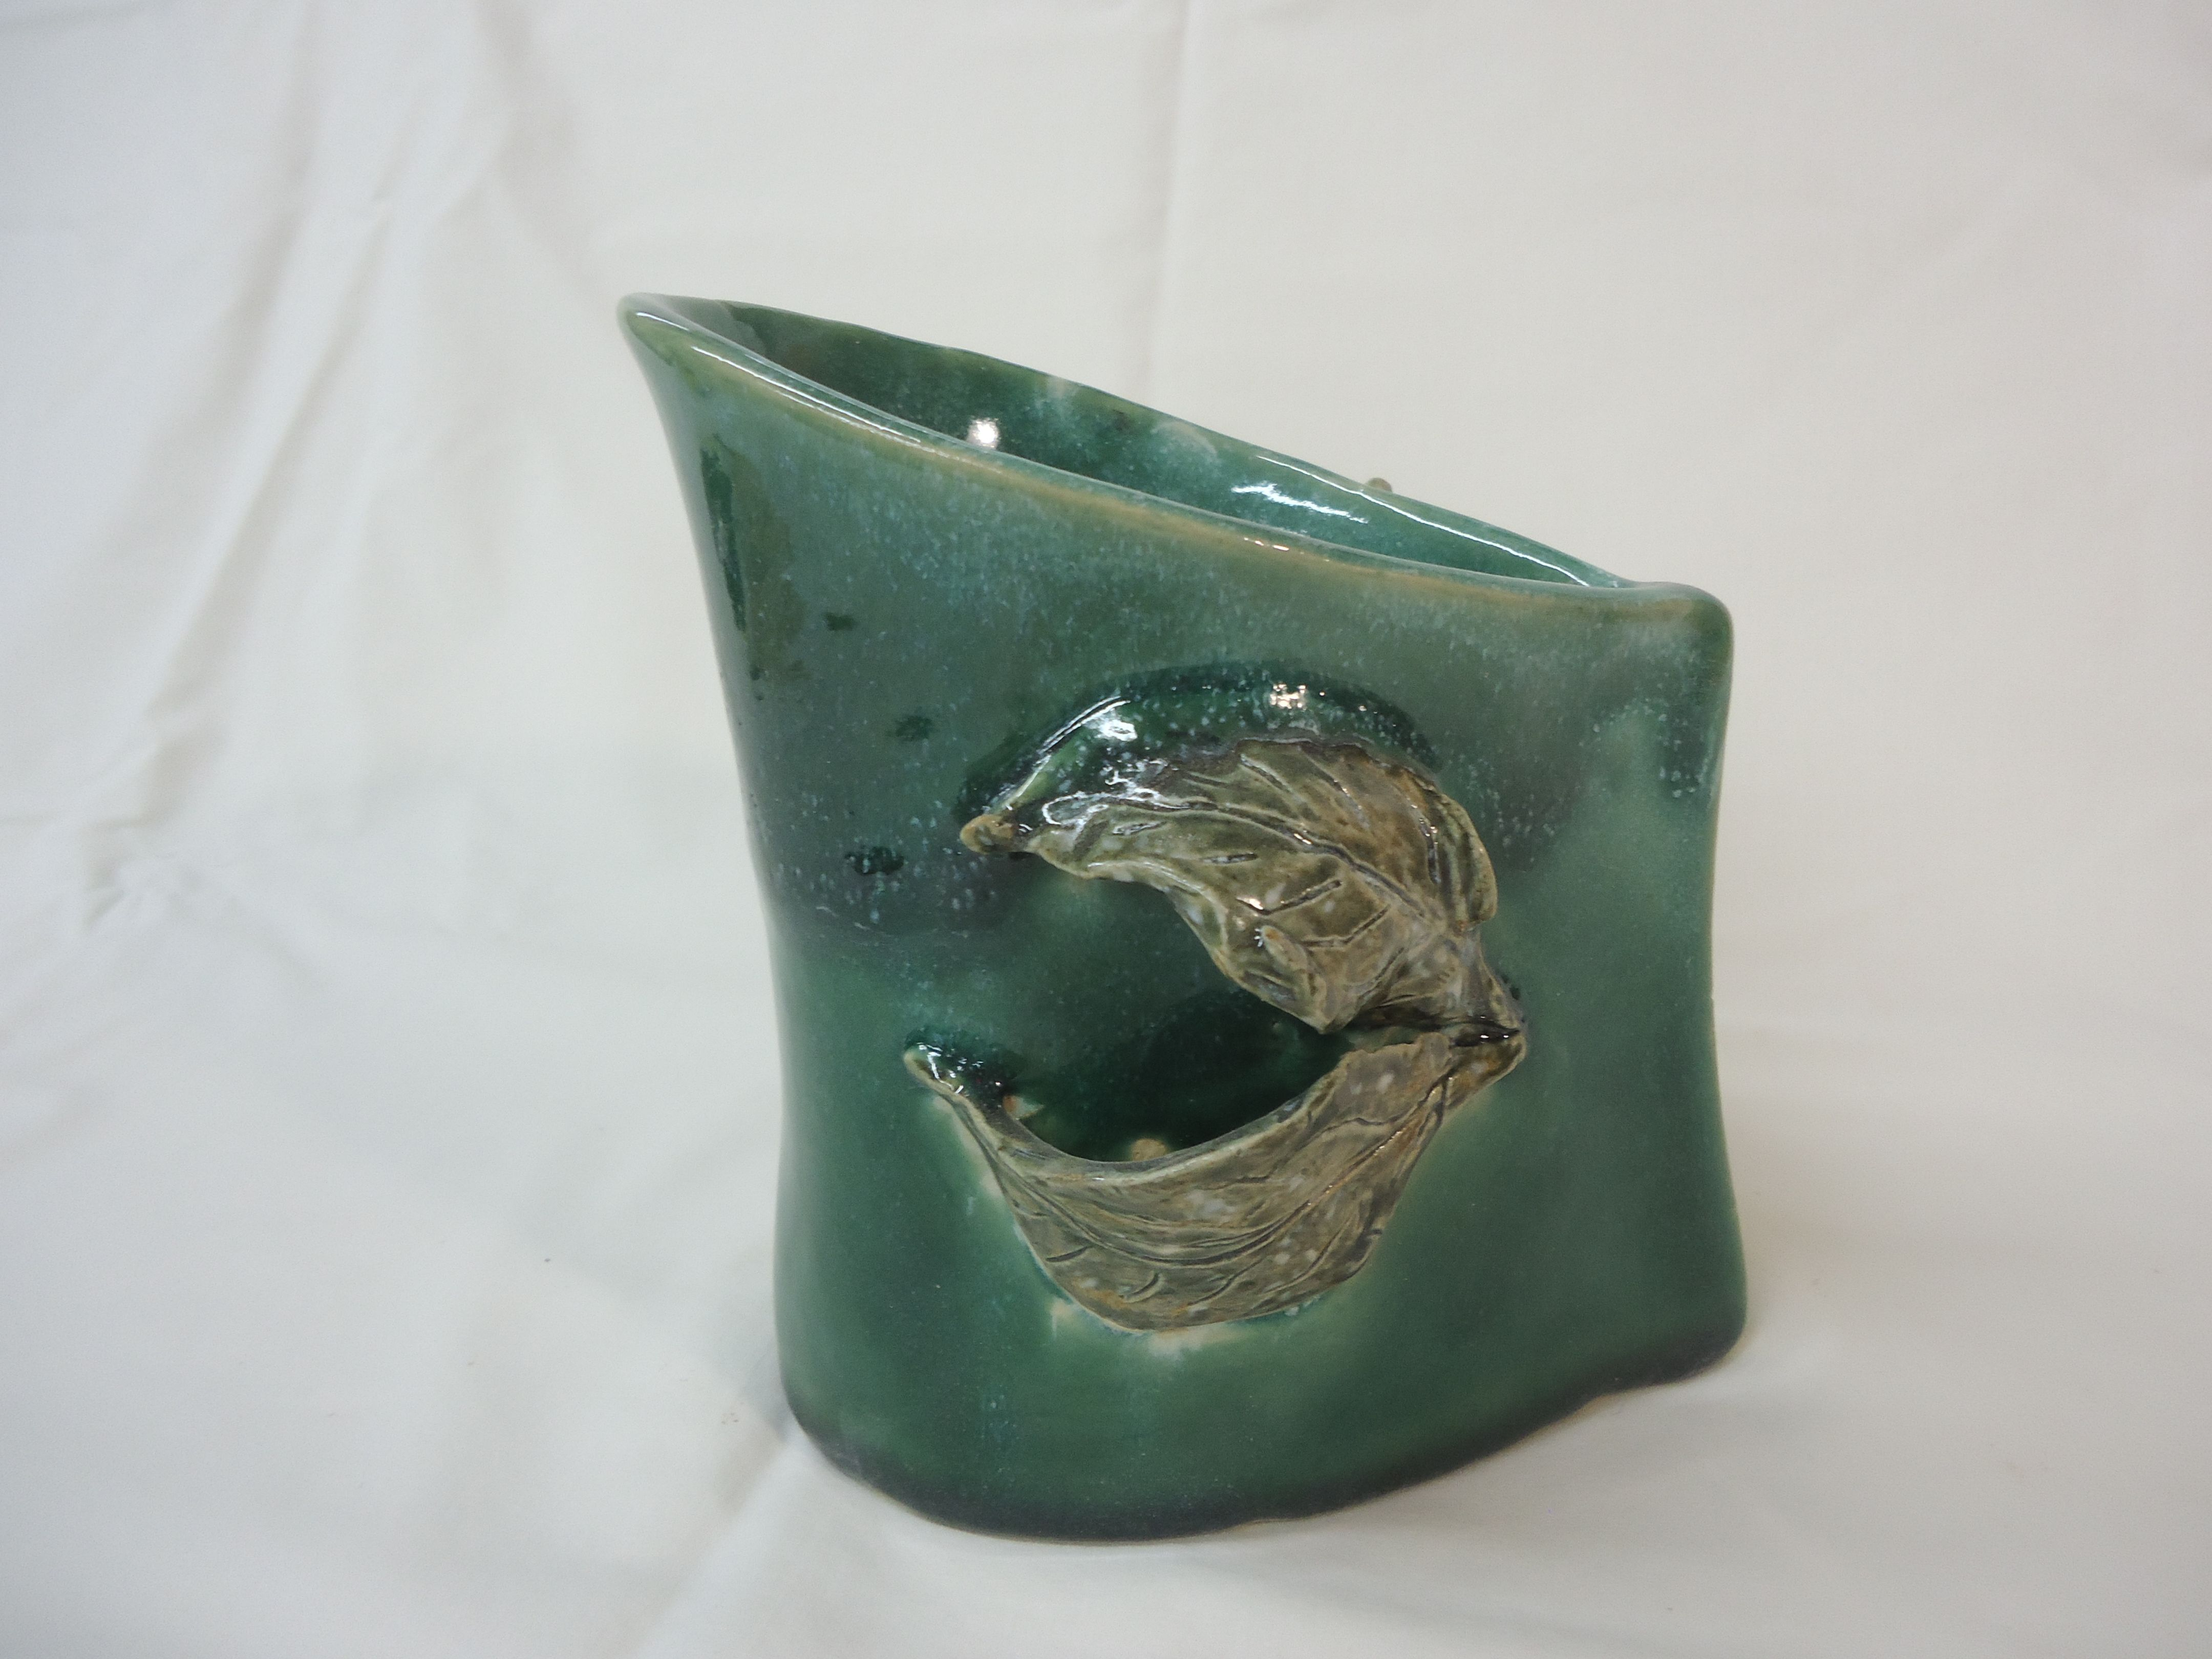 handbuilt large-mouth vase with leaves added